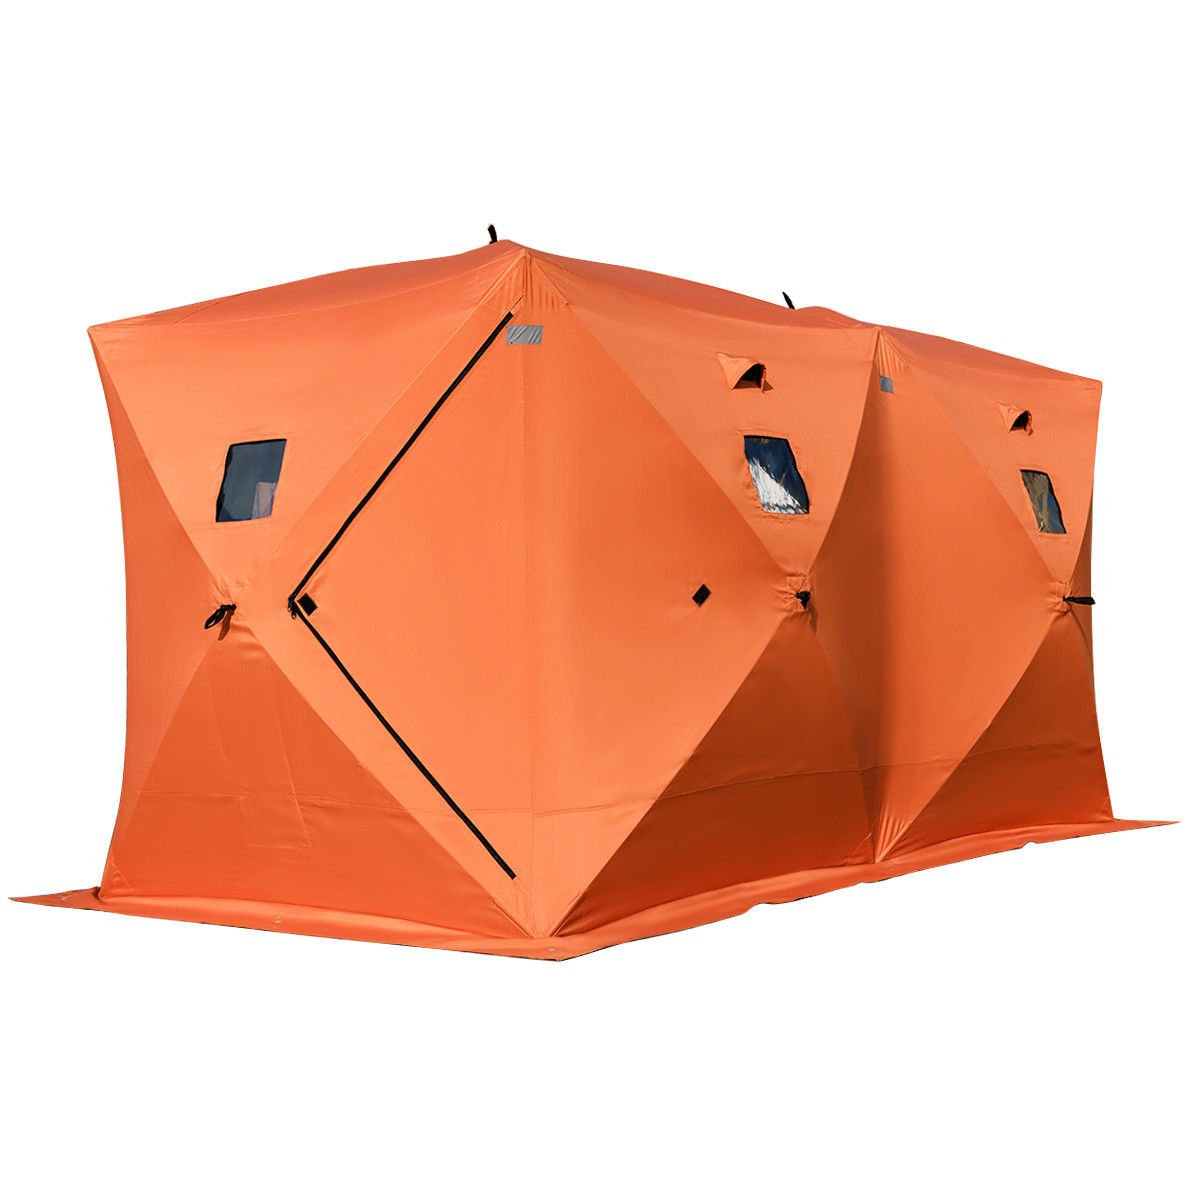 Tangkula Ice Shelter Waterproof Pop-up 8-person with Window Carry Bags Fishing Tent Shanty